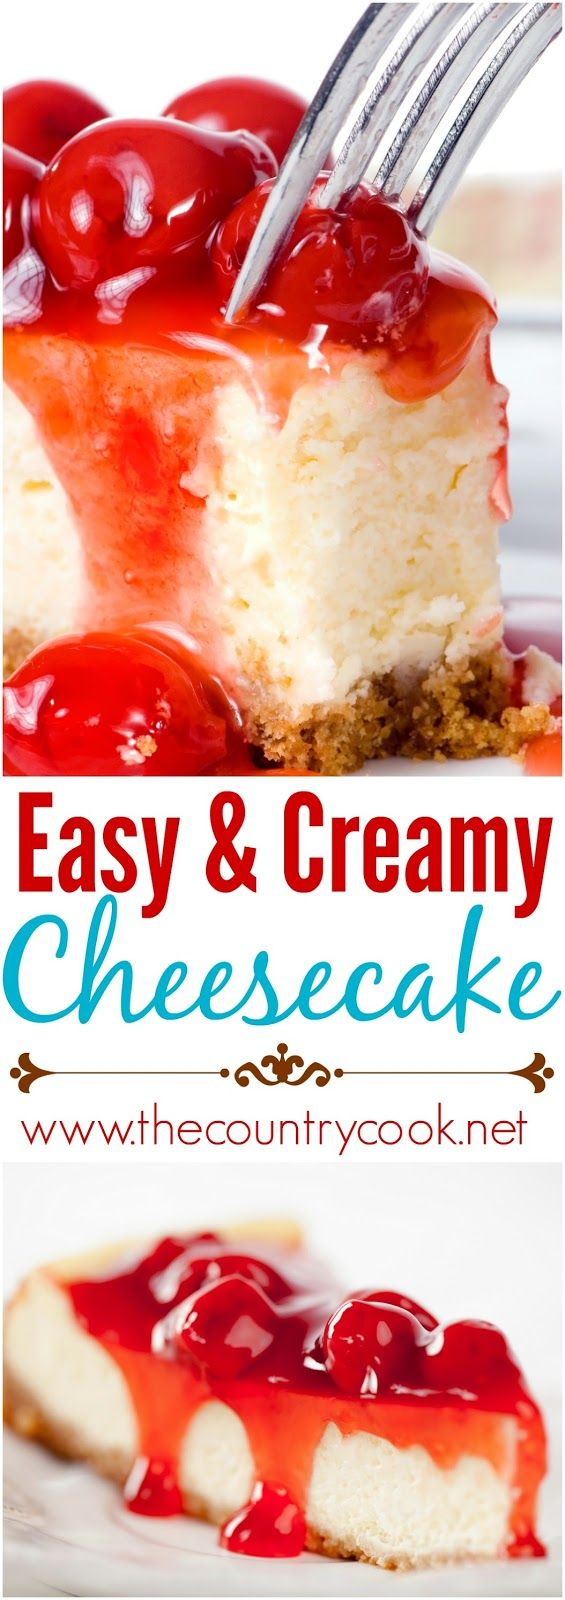 Easy and Creamy Cheesecake #cheesecake